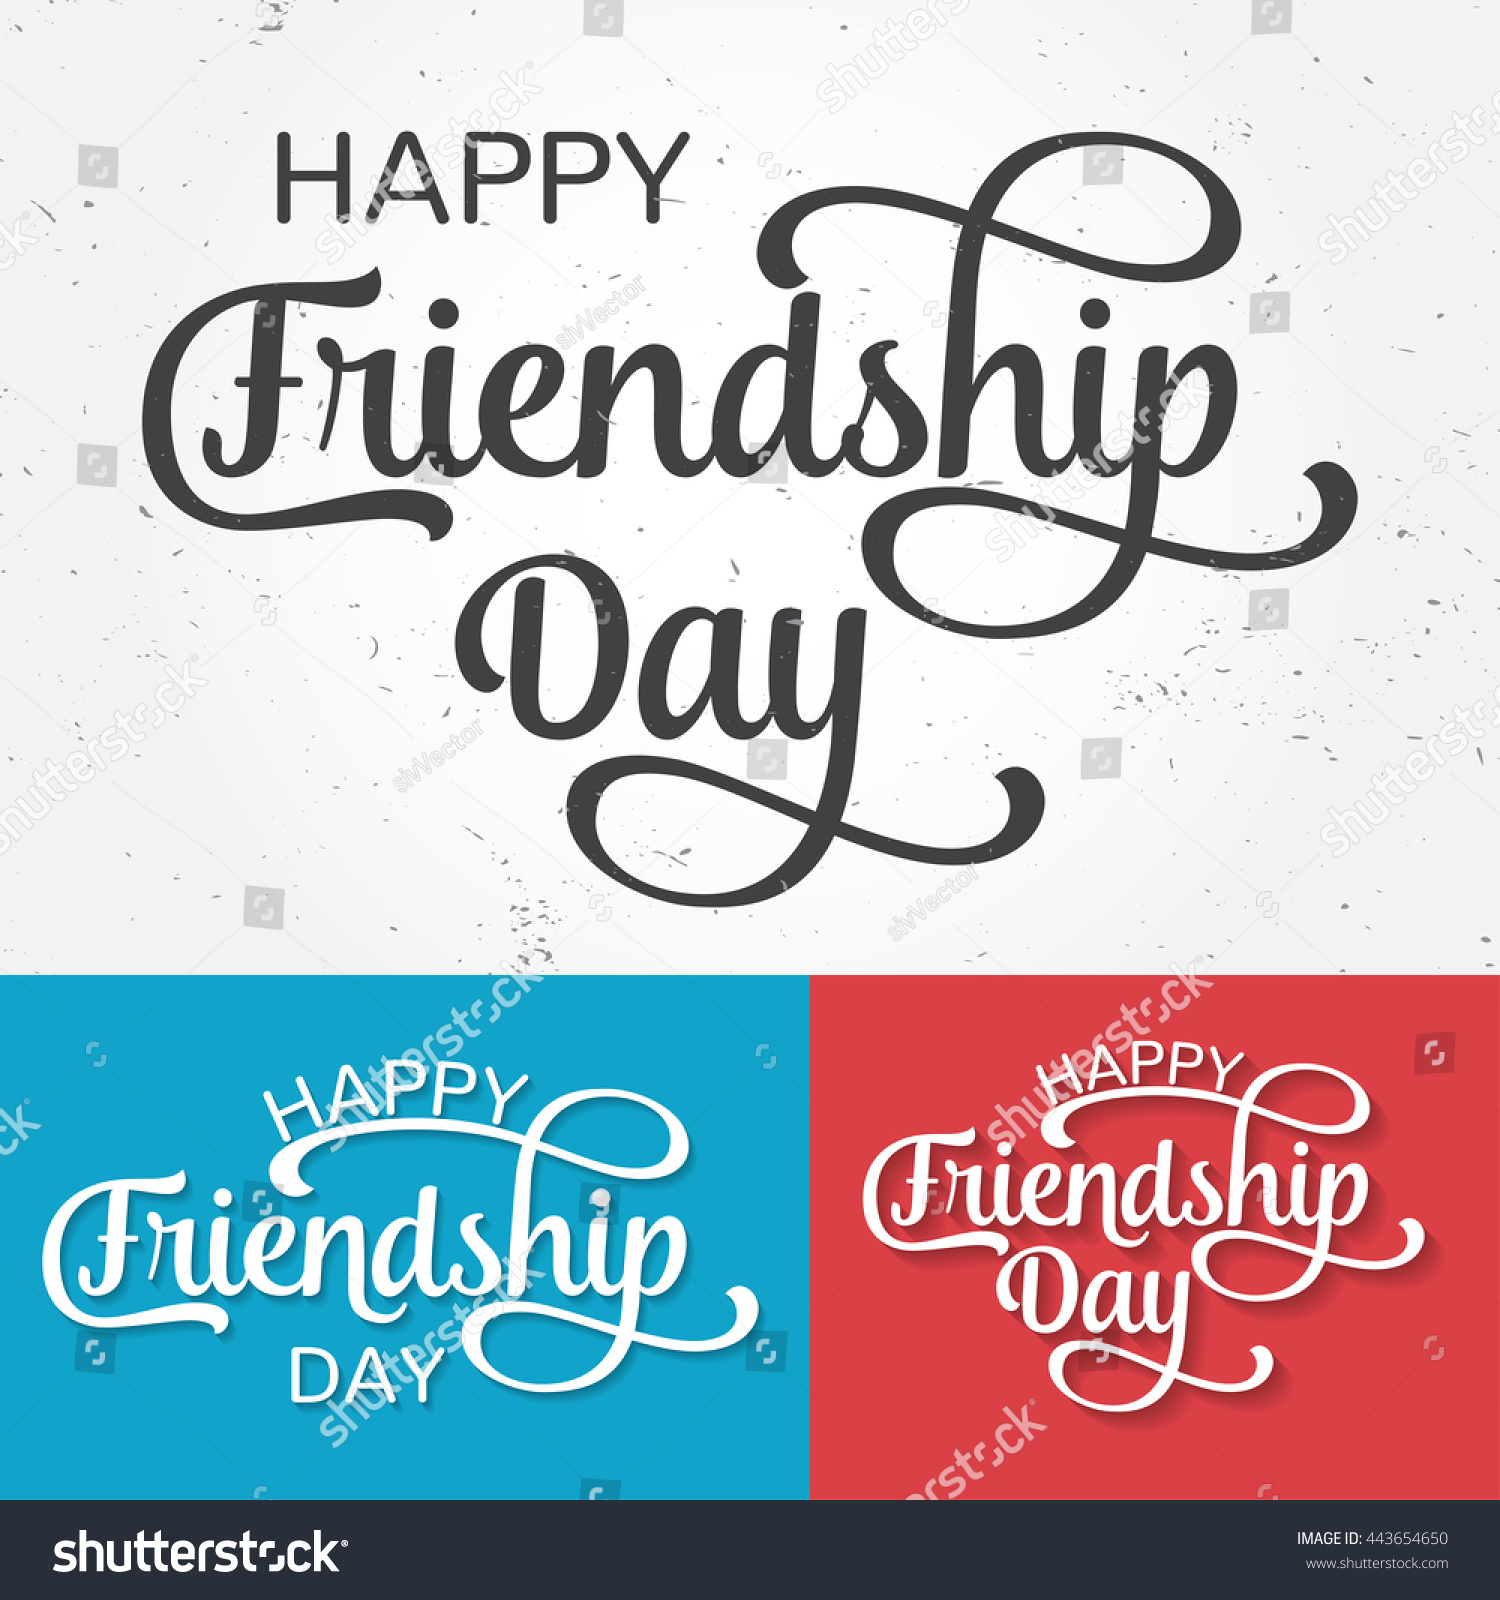 Happy Friendship Day Greeting Card. For Poster, Flyer